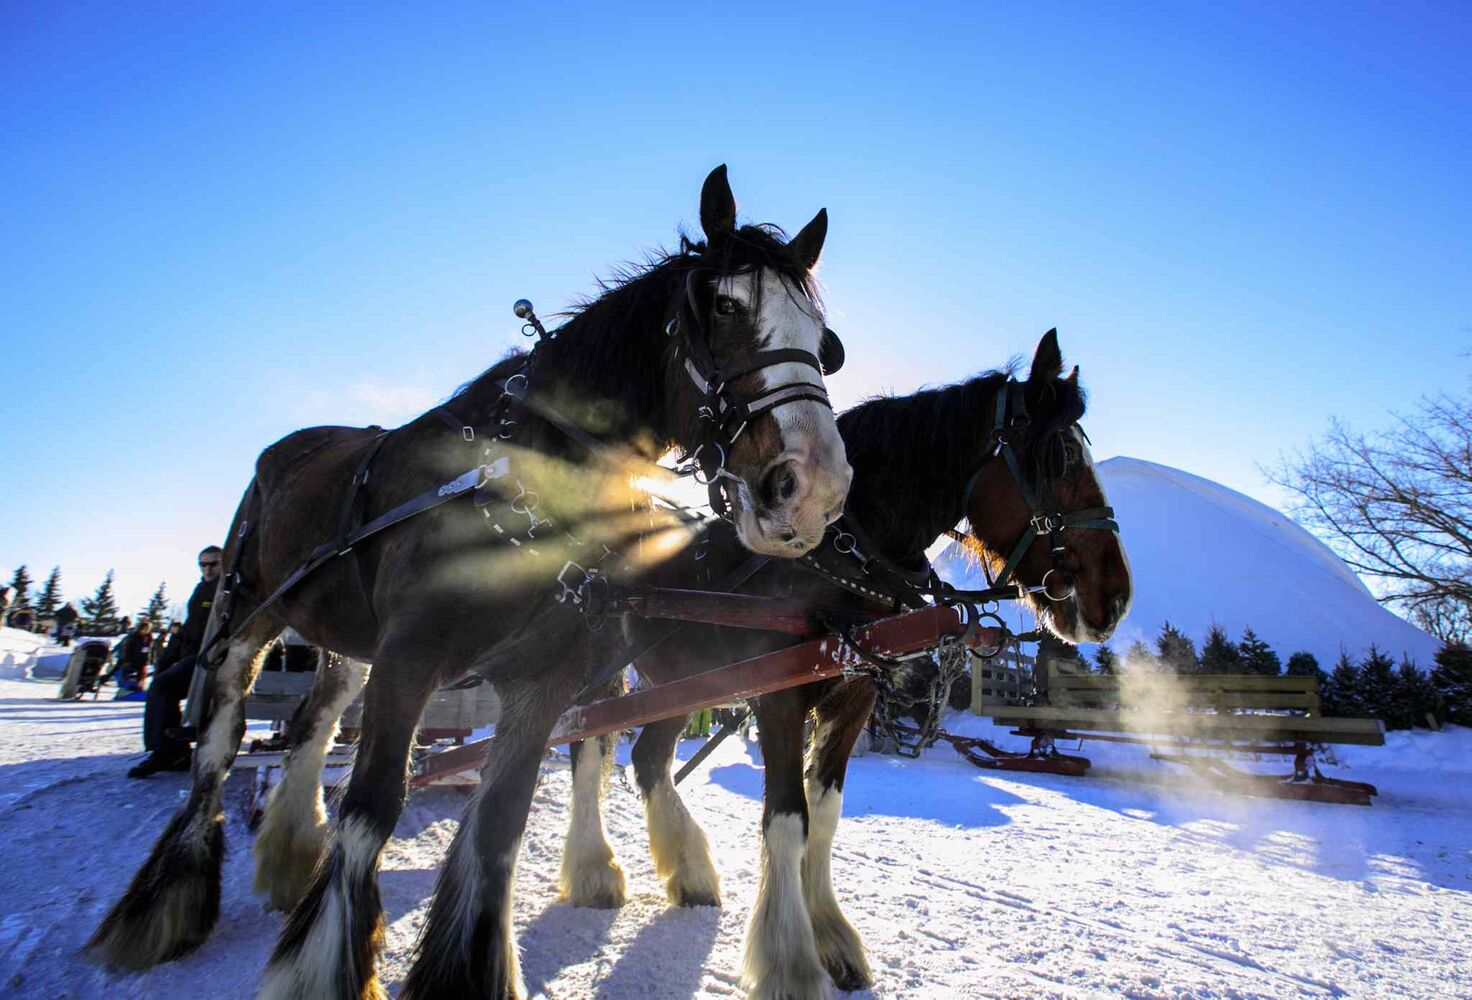 Heaving breathing horses about to pull a sleigh at Festival du Voyageur on Louis Riel Day.